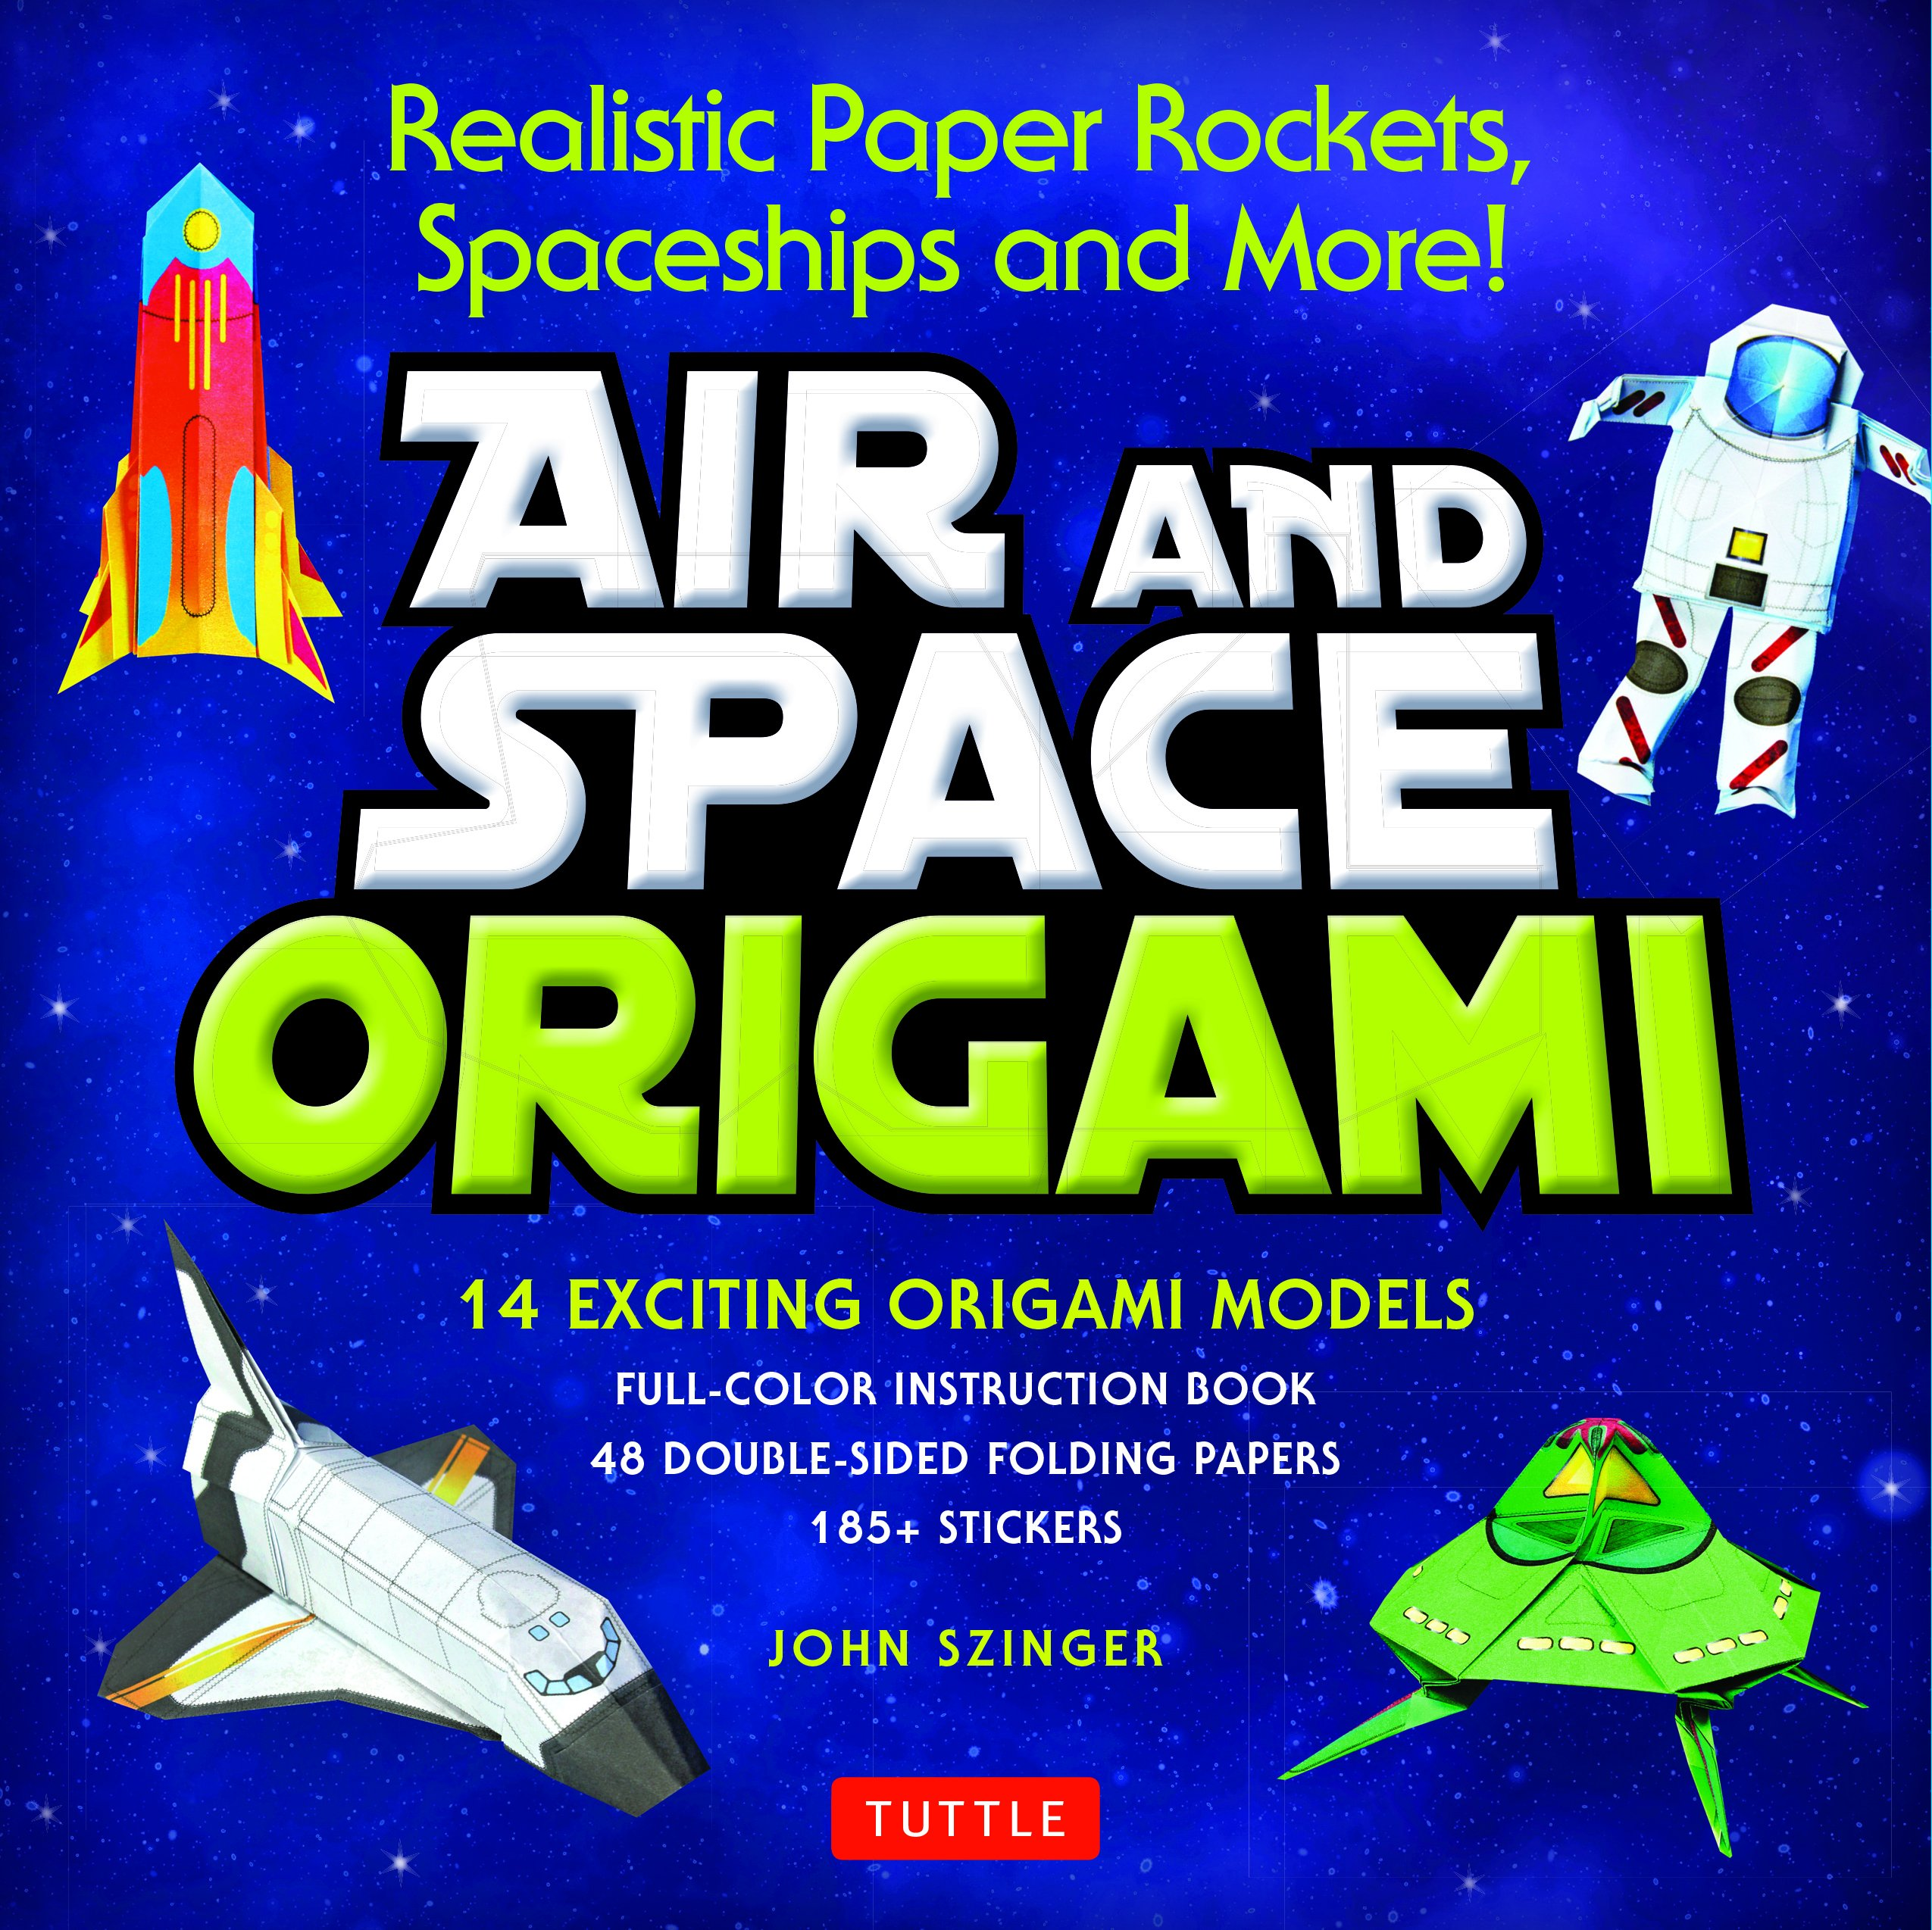 Air and Space Origami Kit: Realistic Paper Rockets